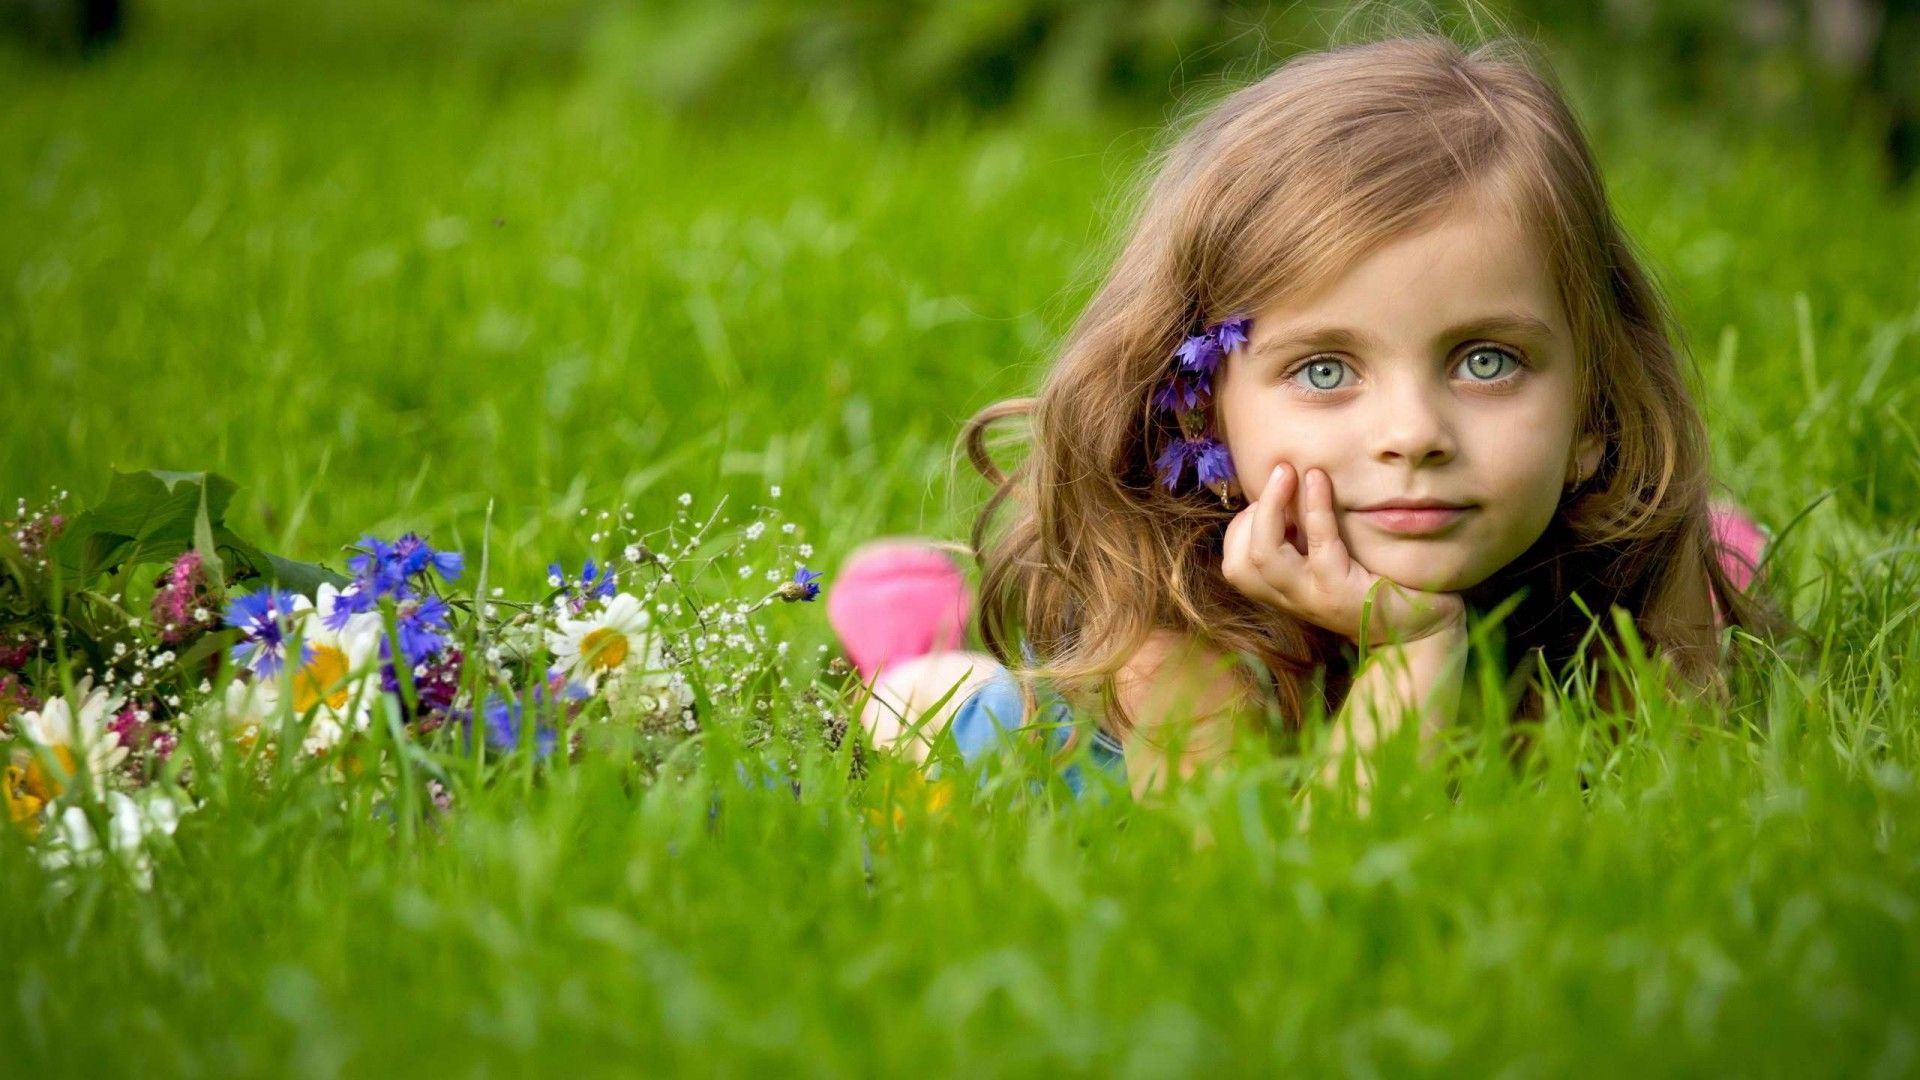 download free baby wallpapers for your mobile phone wallpapers